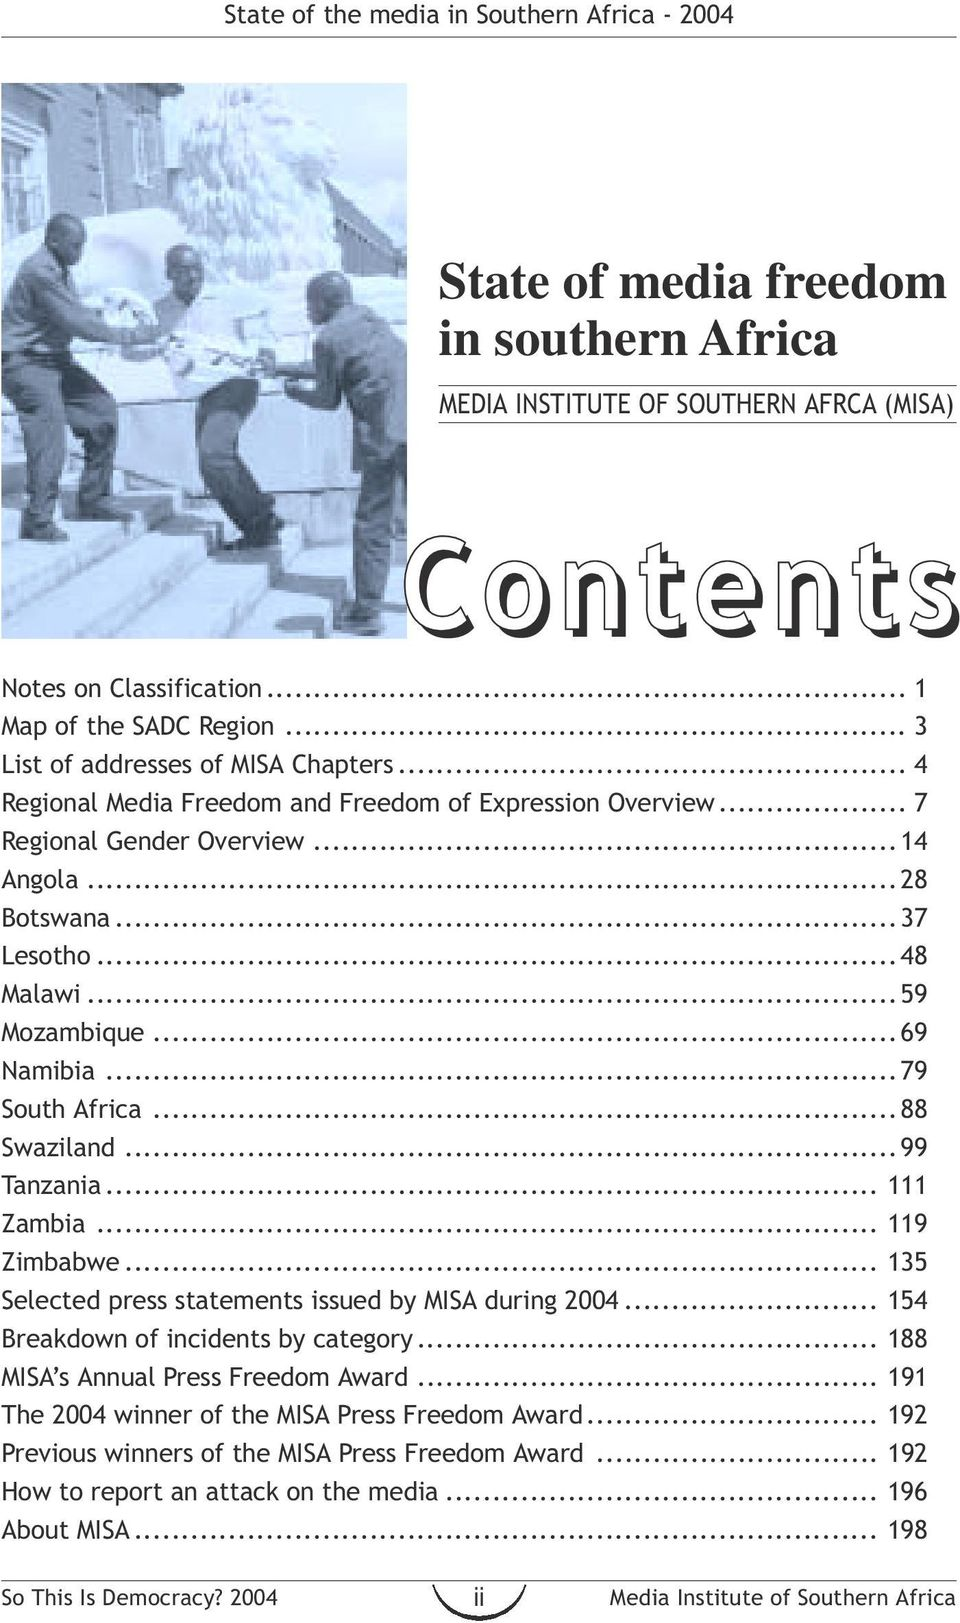 .. 79 South Africa... 88 Swaziland... 99 Tanzania... 111 Zambia... 119 Zimbabwe... 135 Selected press statements issued by MISA during 2004... 154 Breakdown of incidents by category.